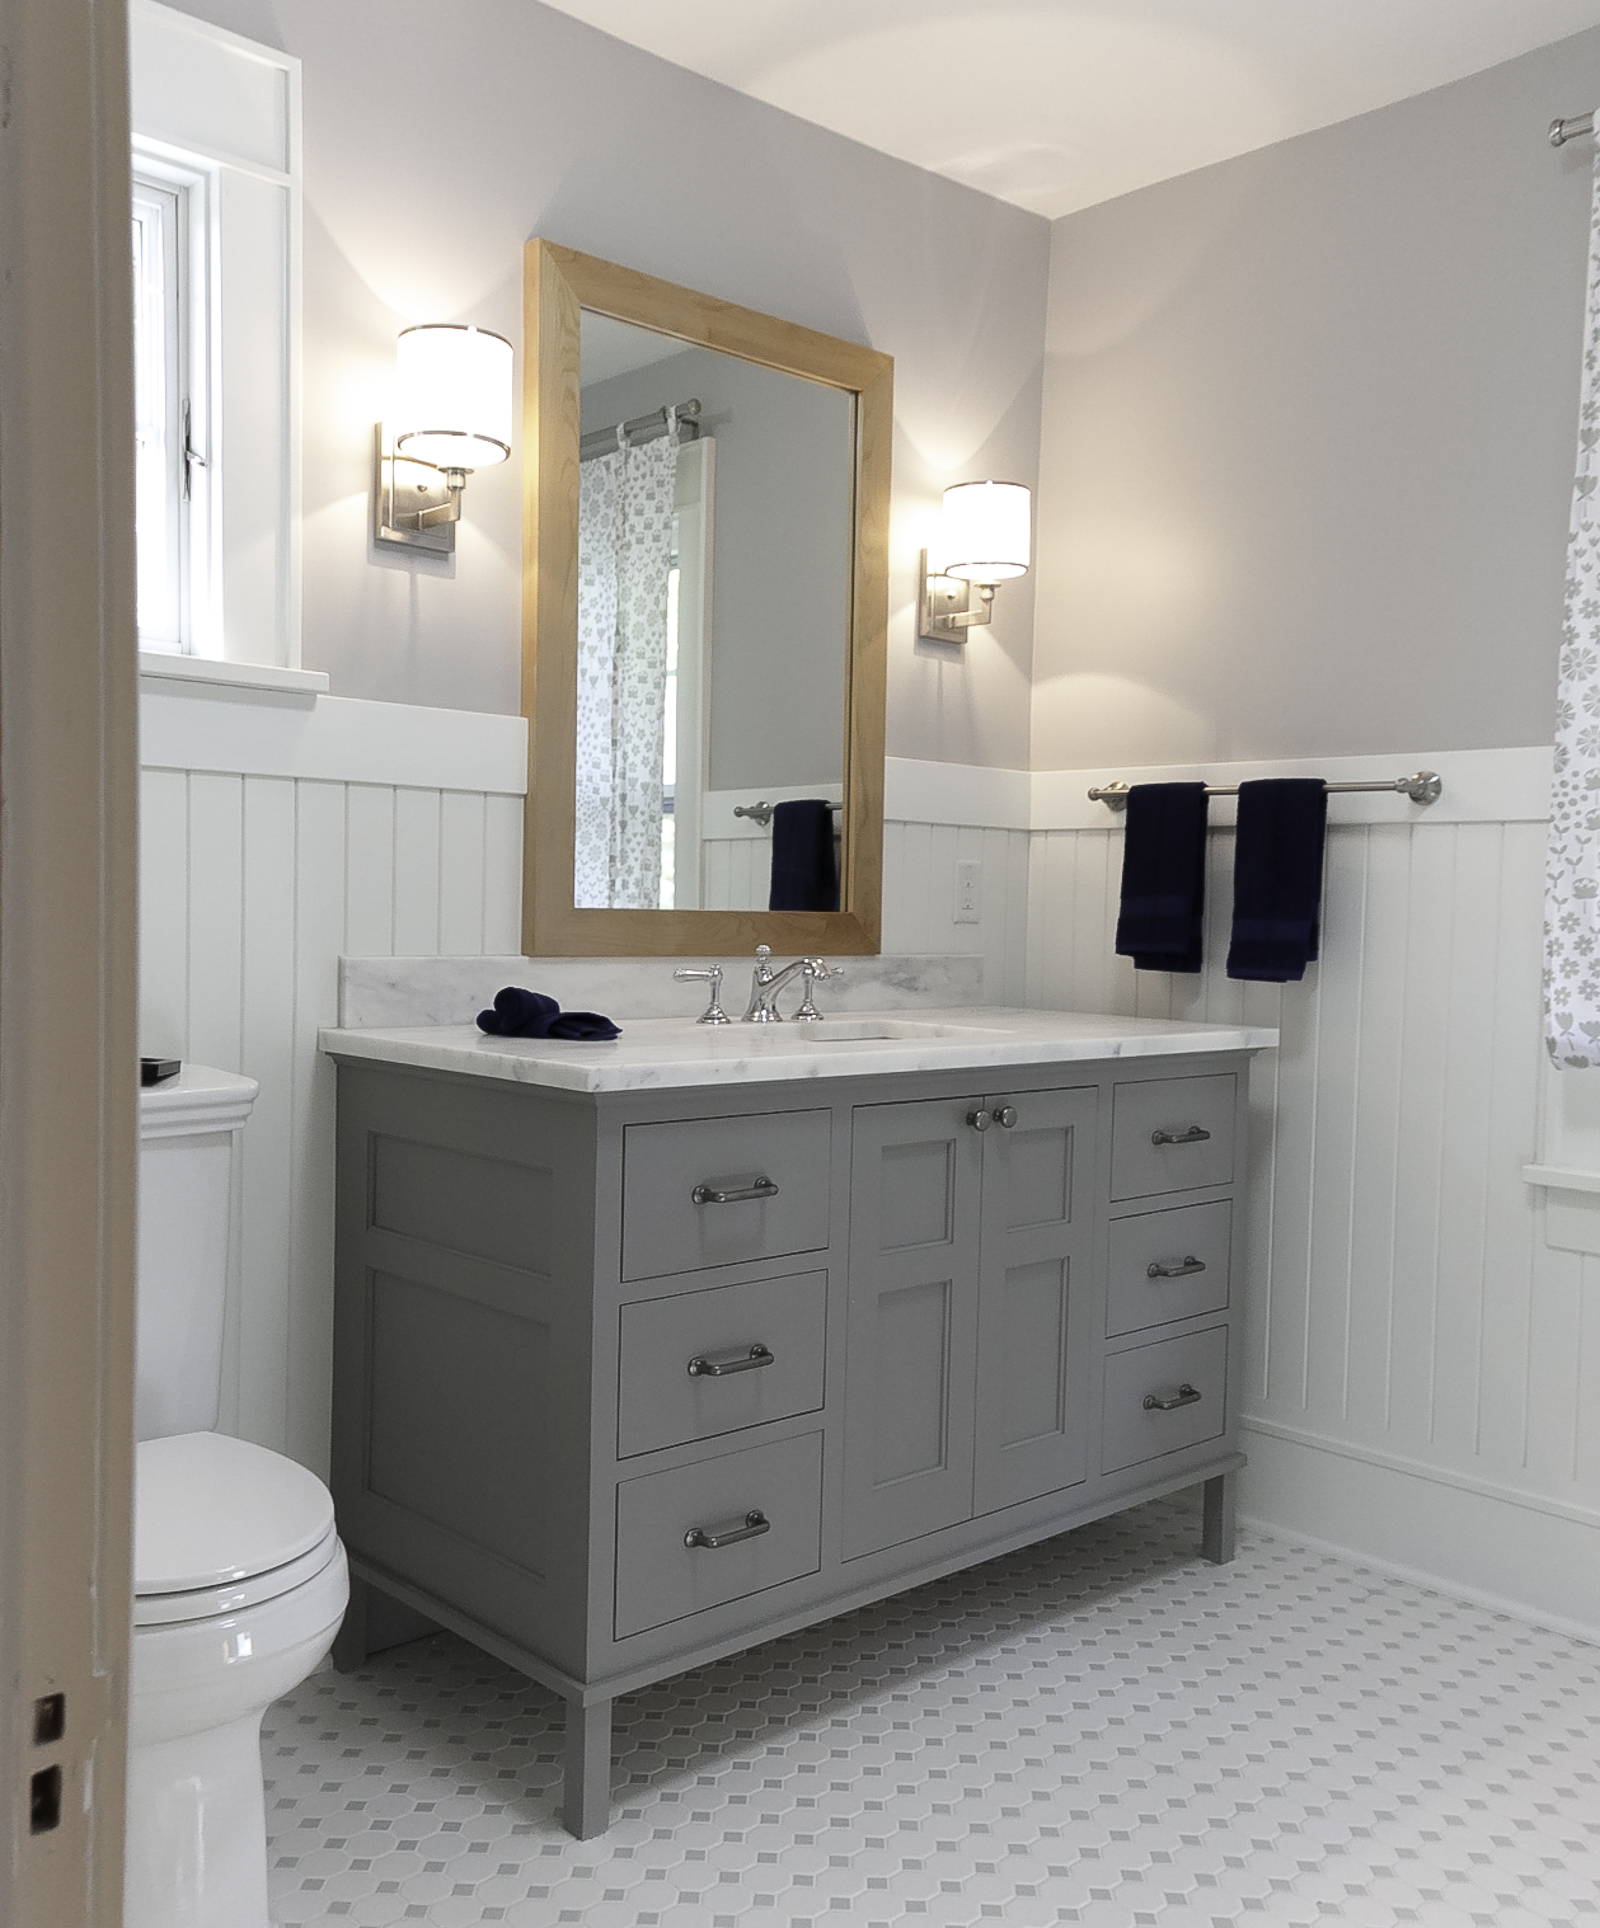 St. Paul Home Restoration Custom Kitchen Bathroom Cabinetry